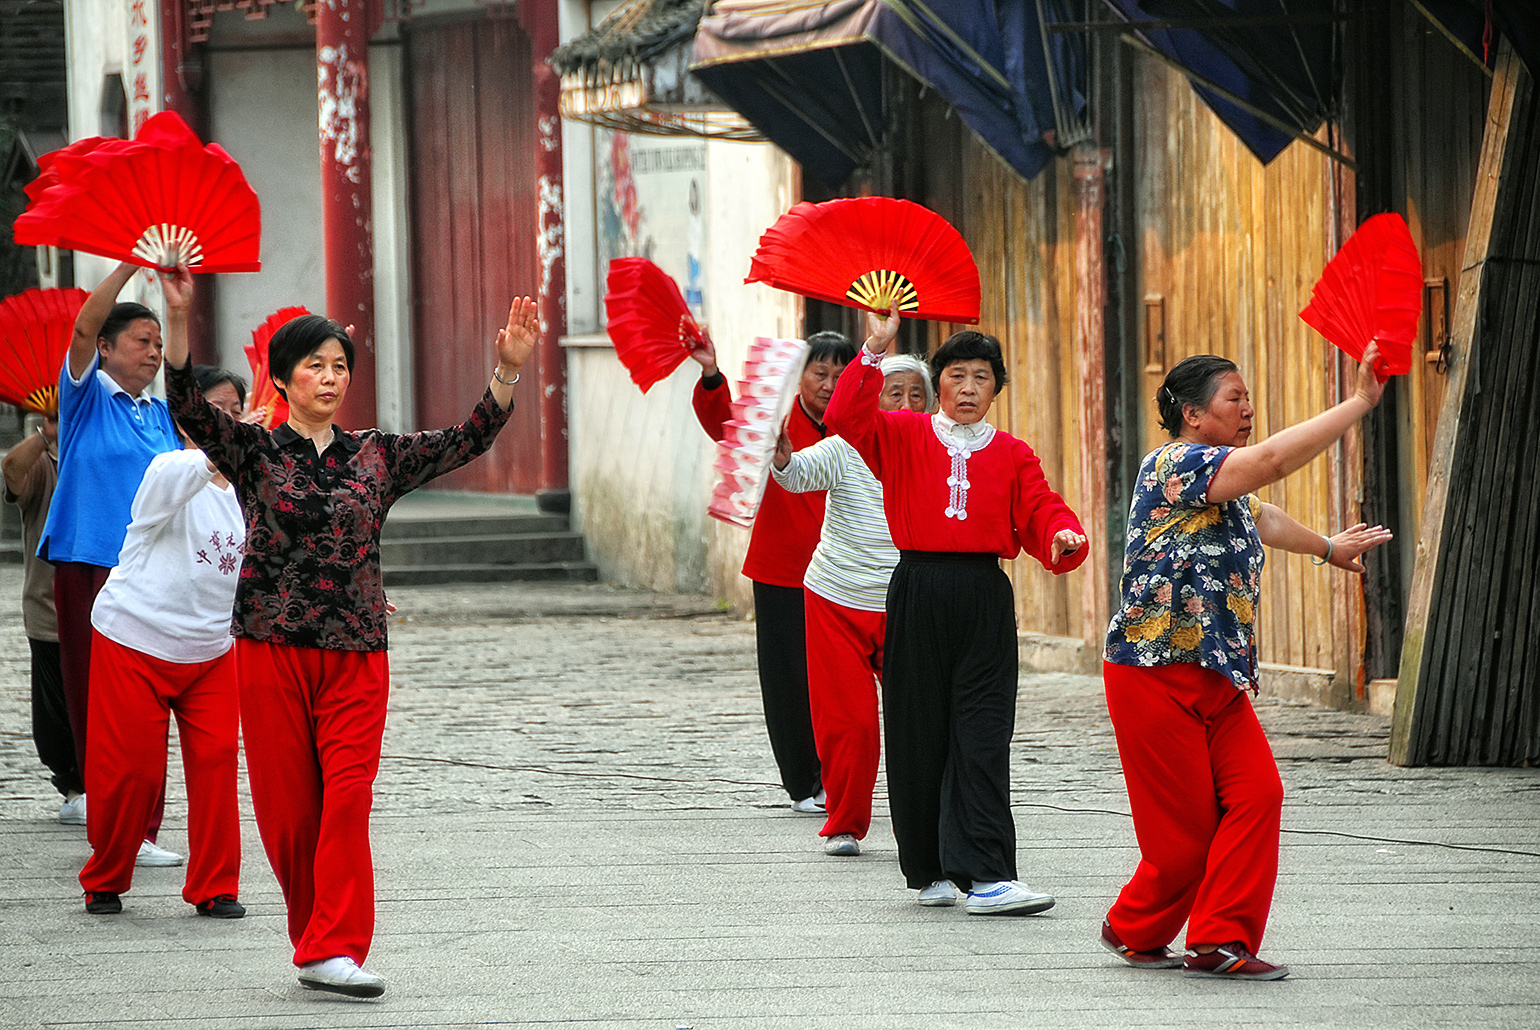 Tai Chi in Tongli